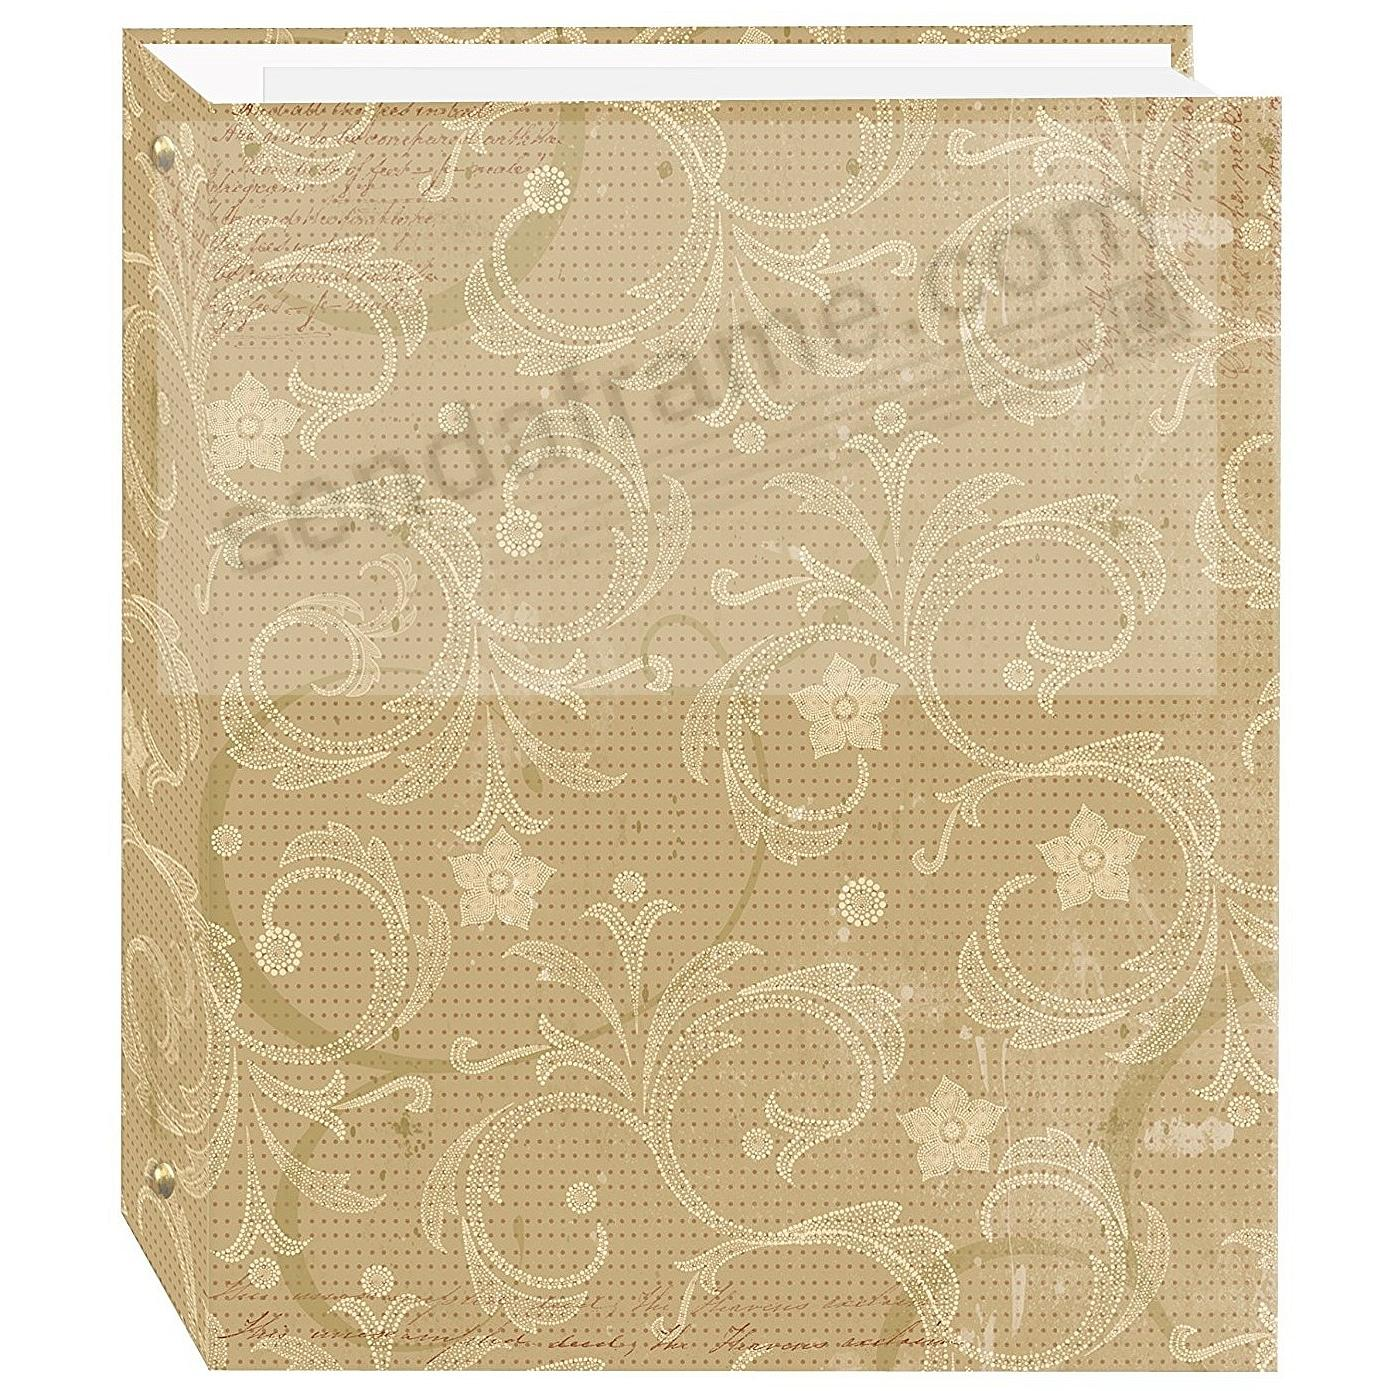 JASMINE Design 3-ring album<br>w/EZ-stick magnetic pages